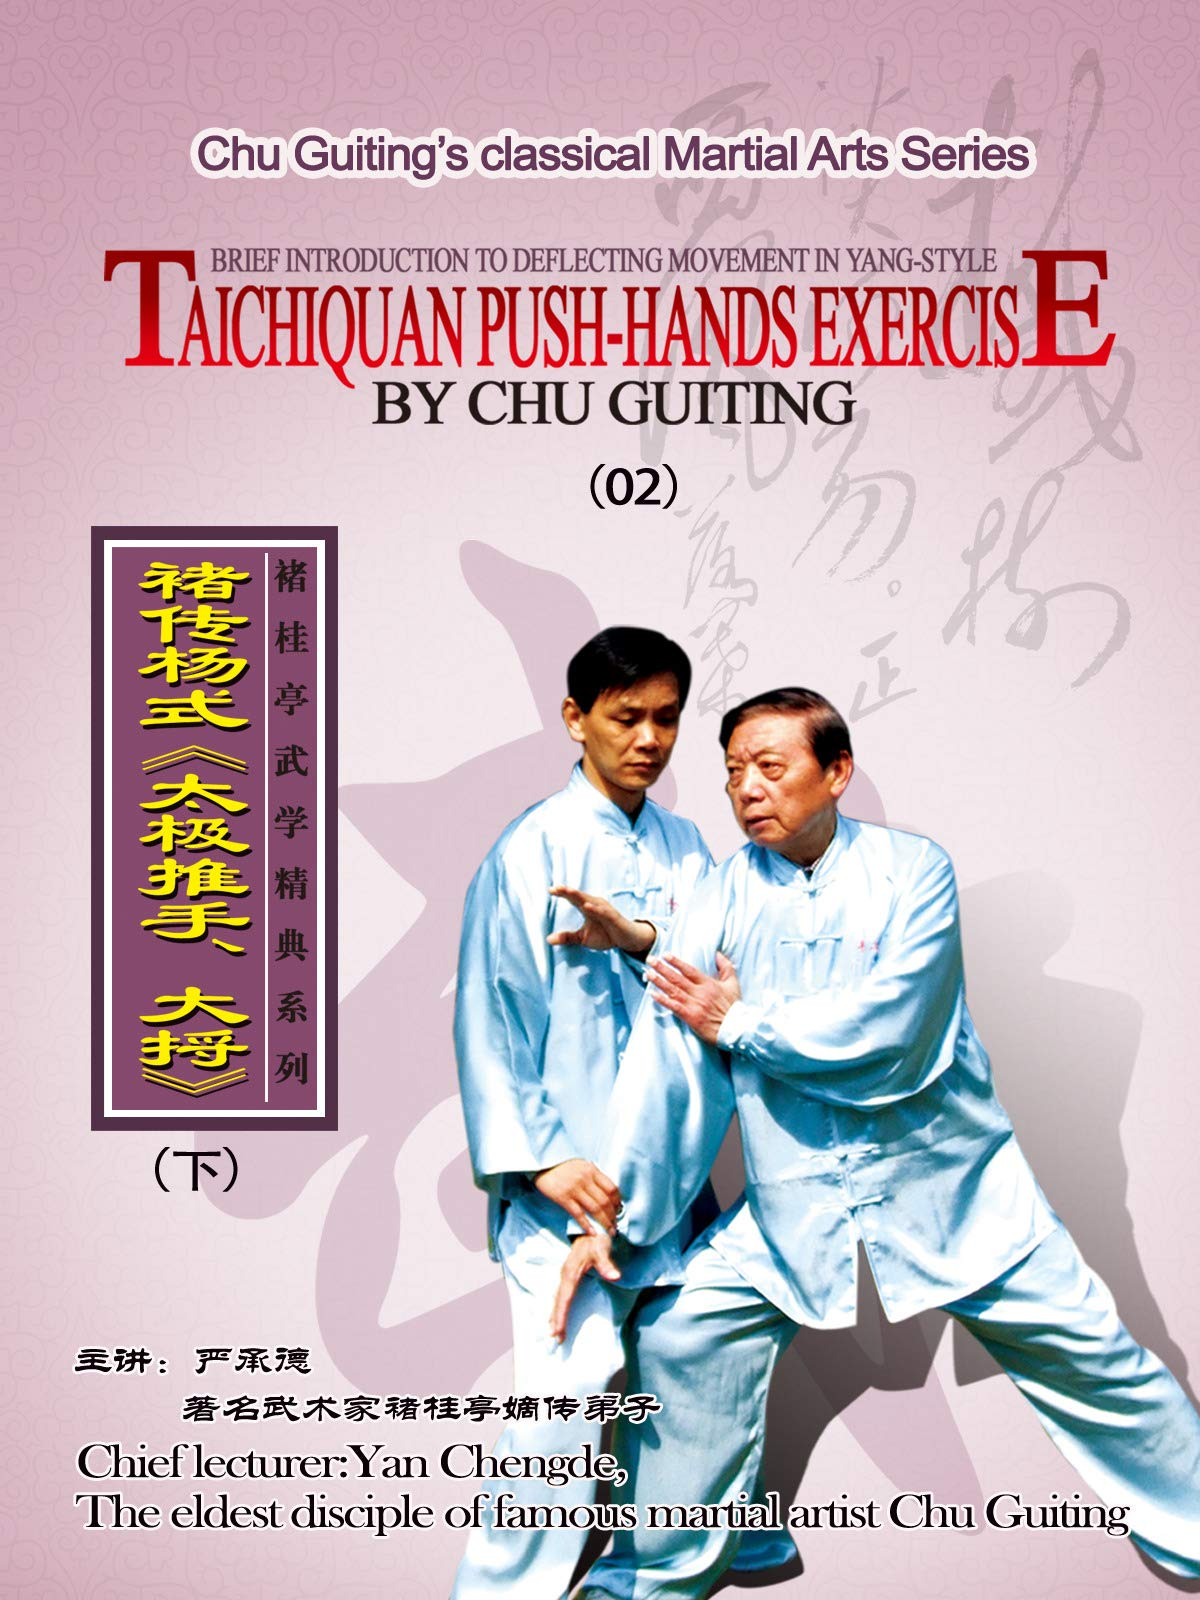 Chu Guiting's classical Martial Arts Series-Brief Introduction to Yang-Taichiquan Push-hands Exercis by Chu Guiting 02